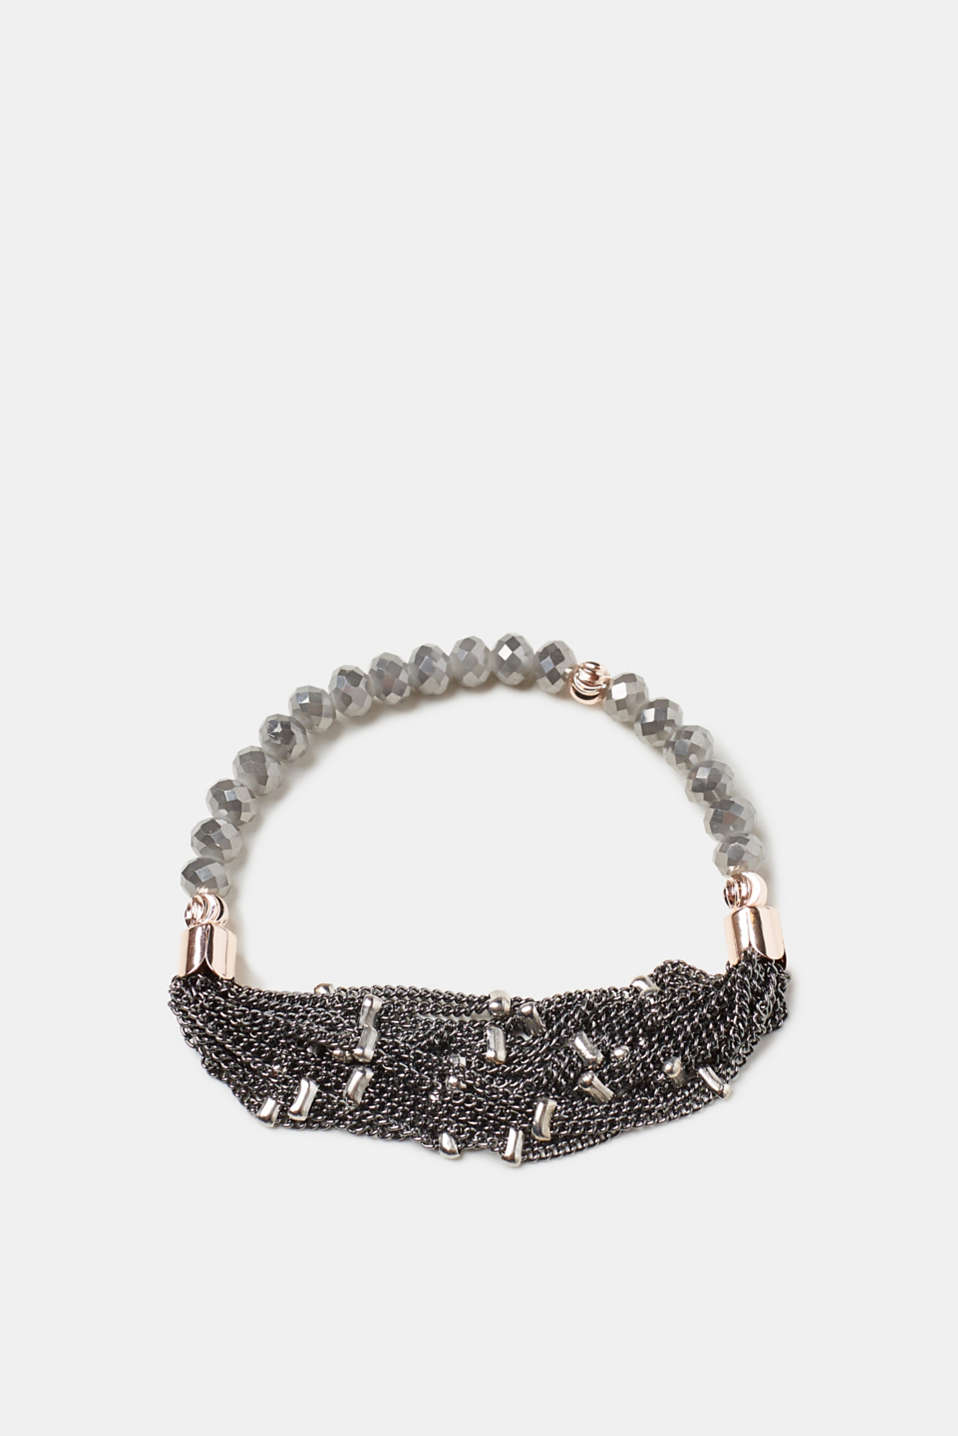 Sophisticated material mix: This slightly elastic double bracelet is made up of numerous beads and chains!